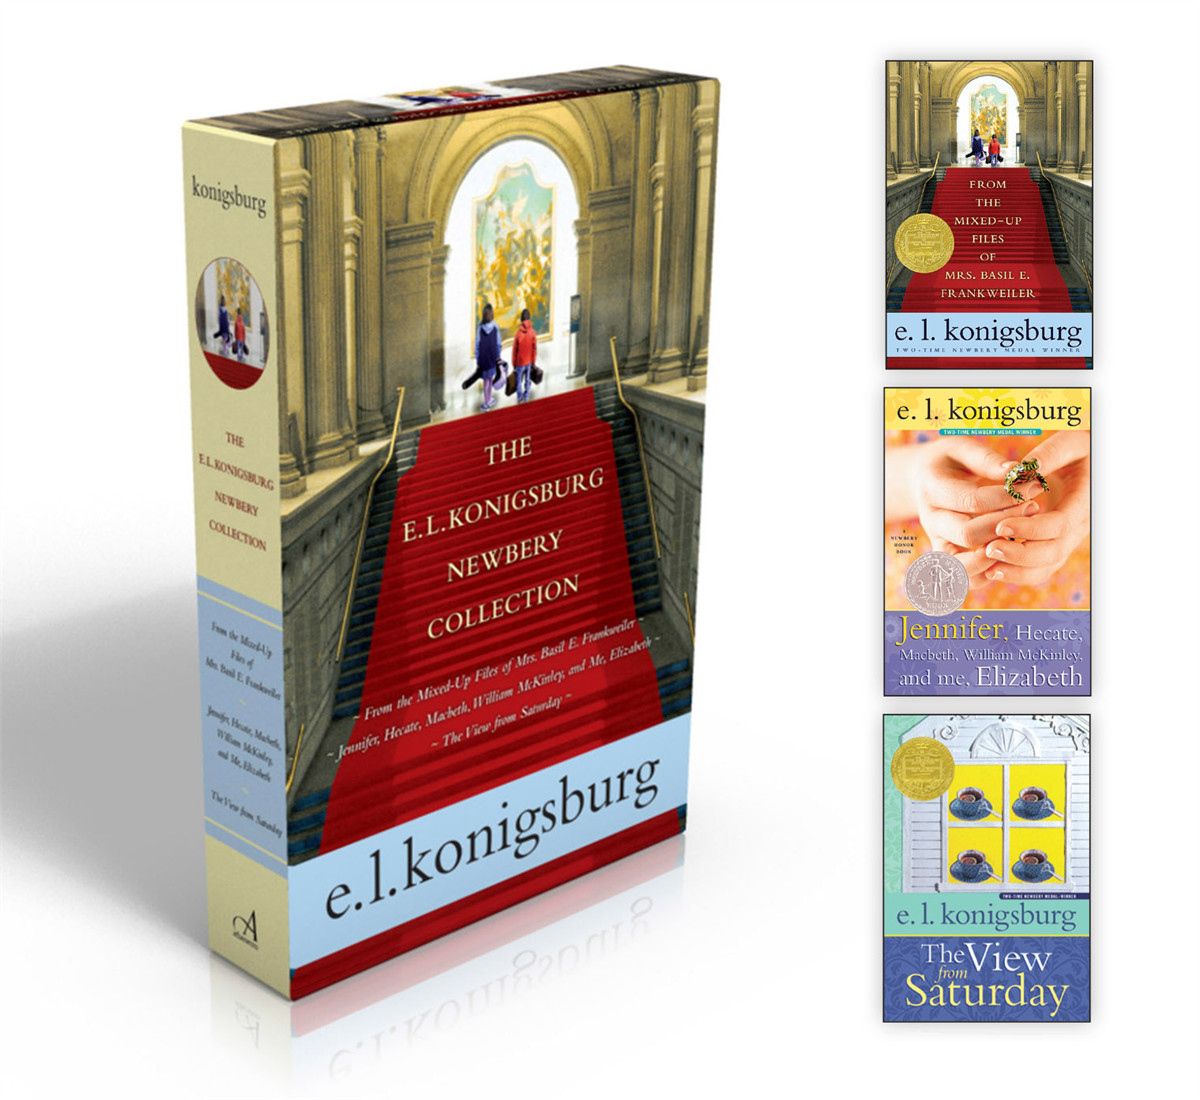 The e l konigsburg newbery collection 9781442497436.in01